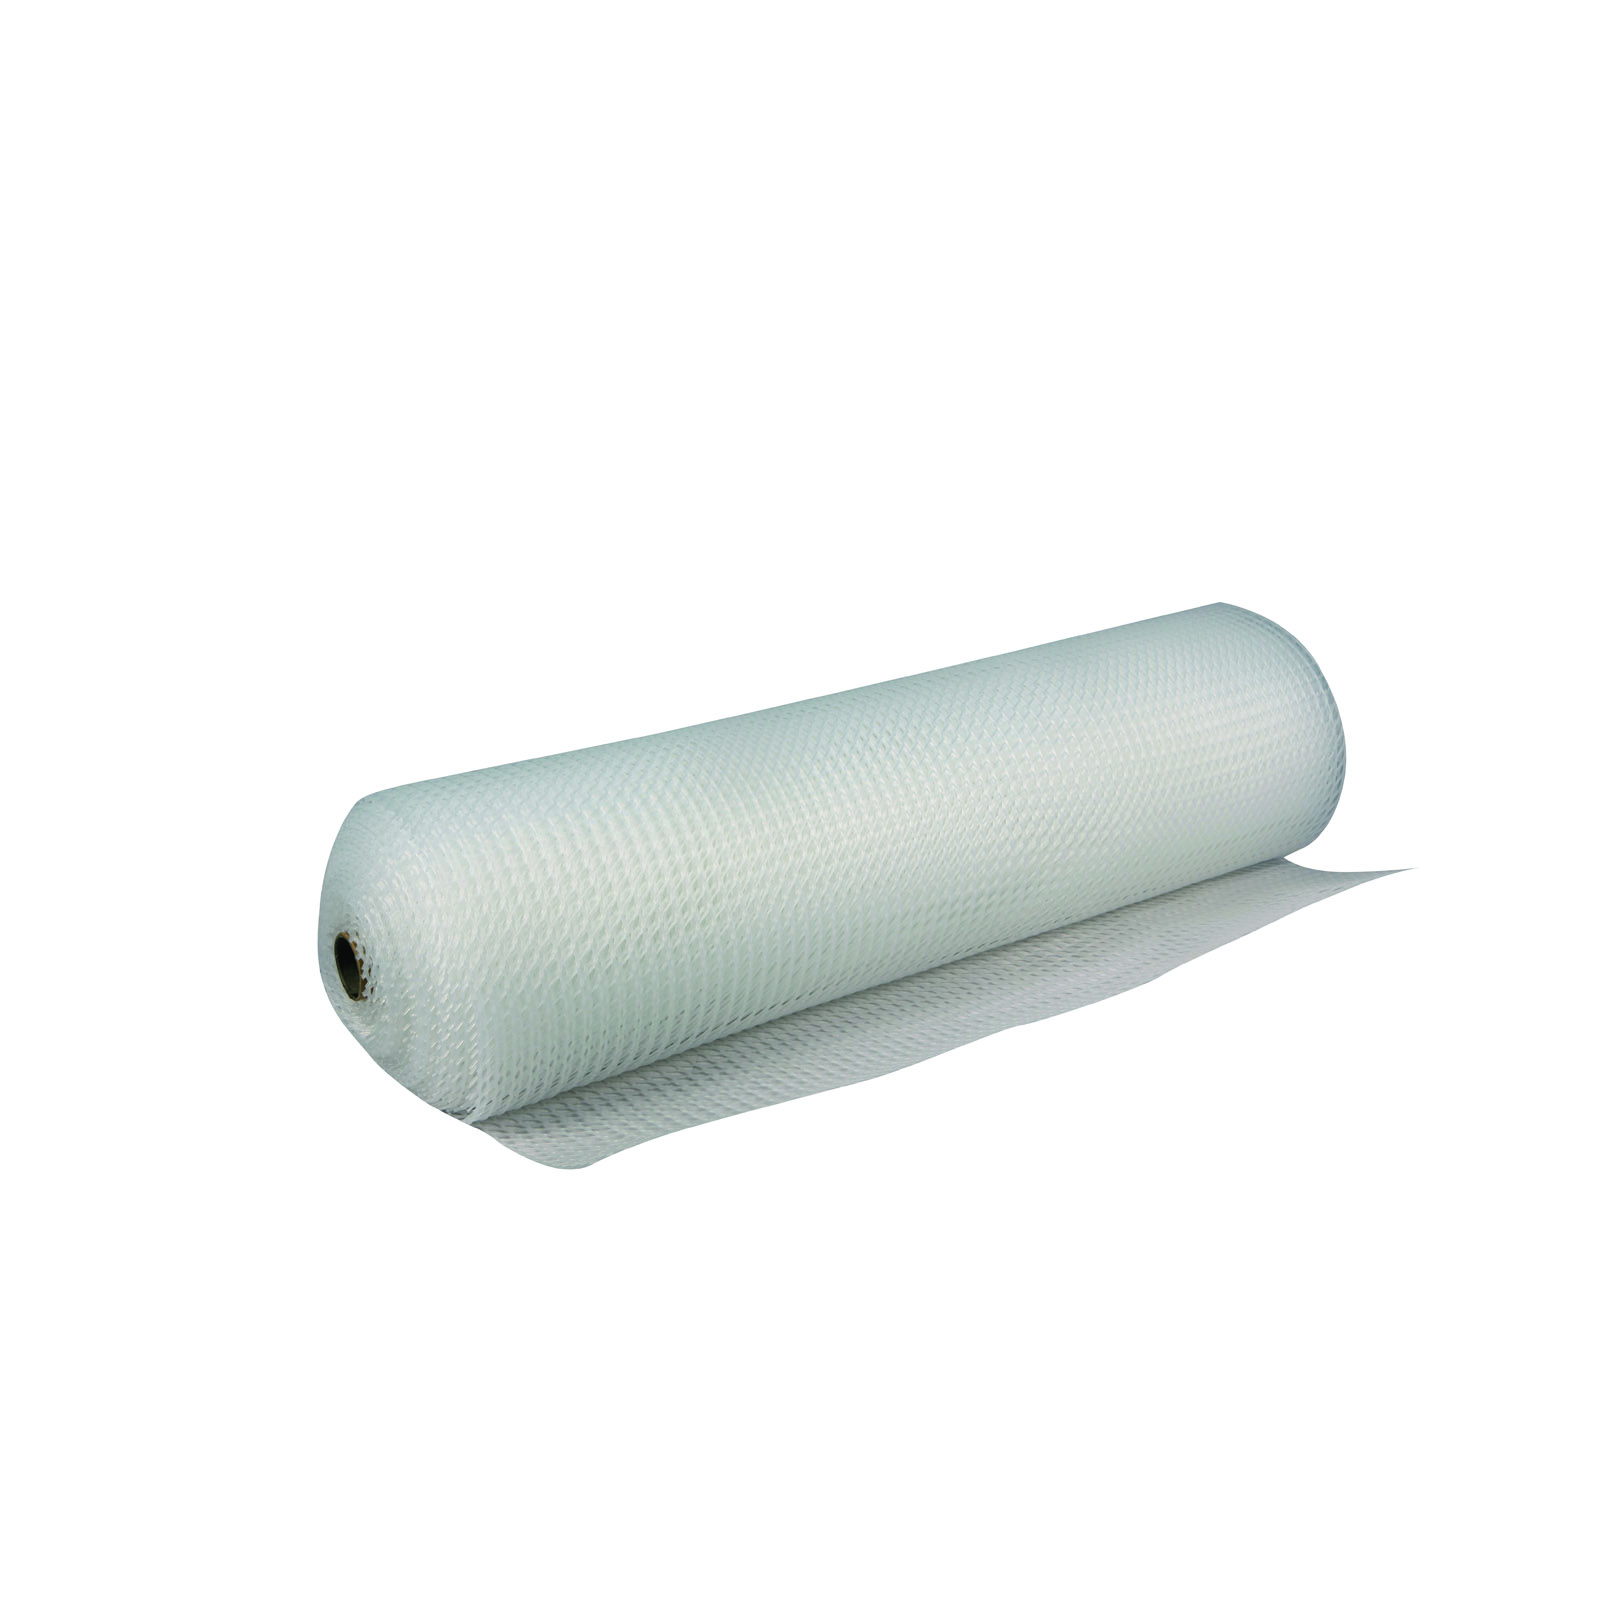 San Jamar UL5103 bar & shelf liner, roll